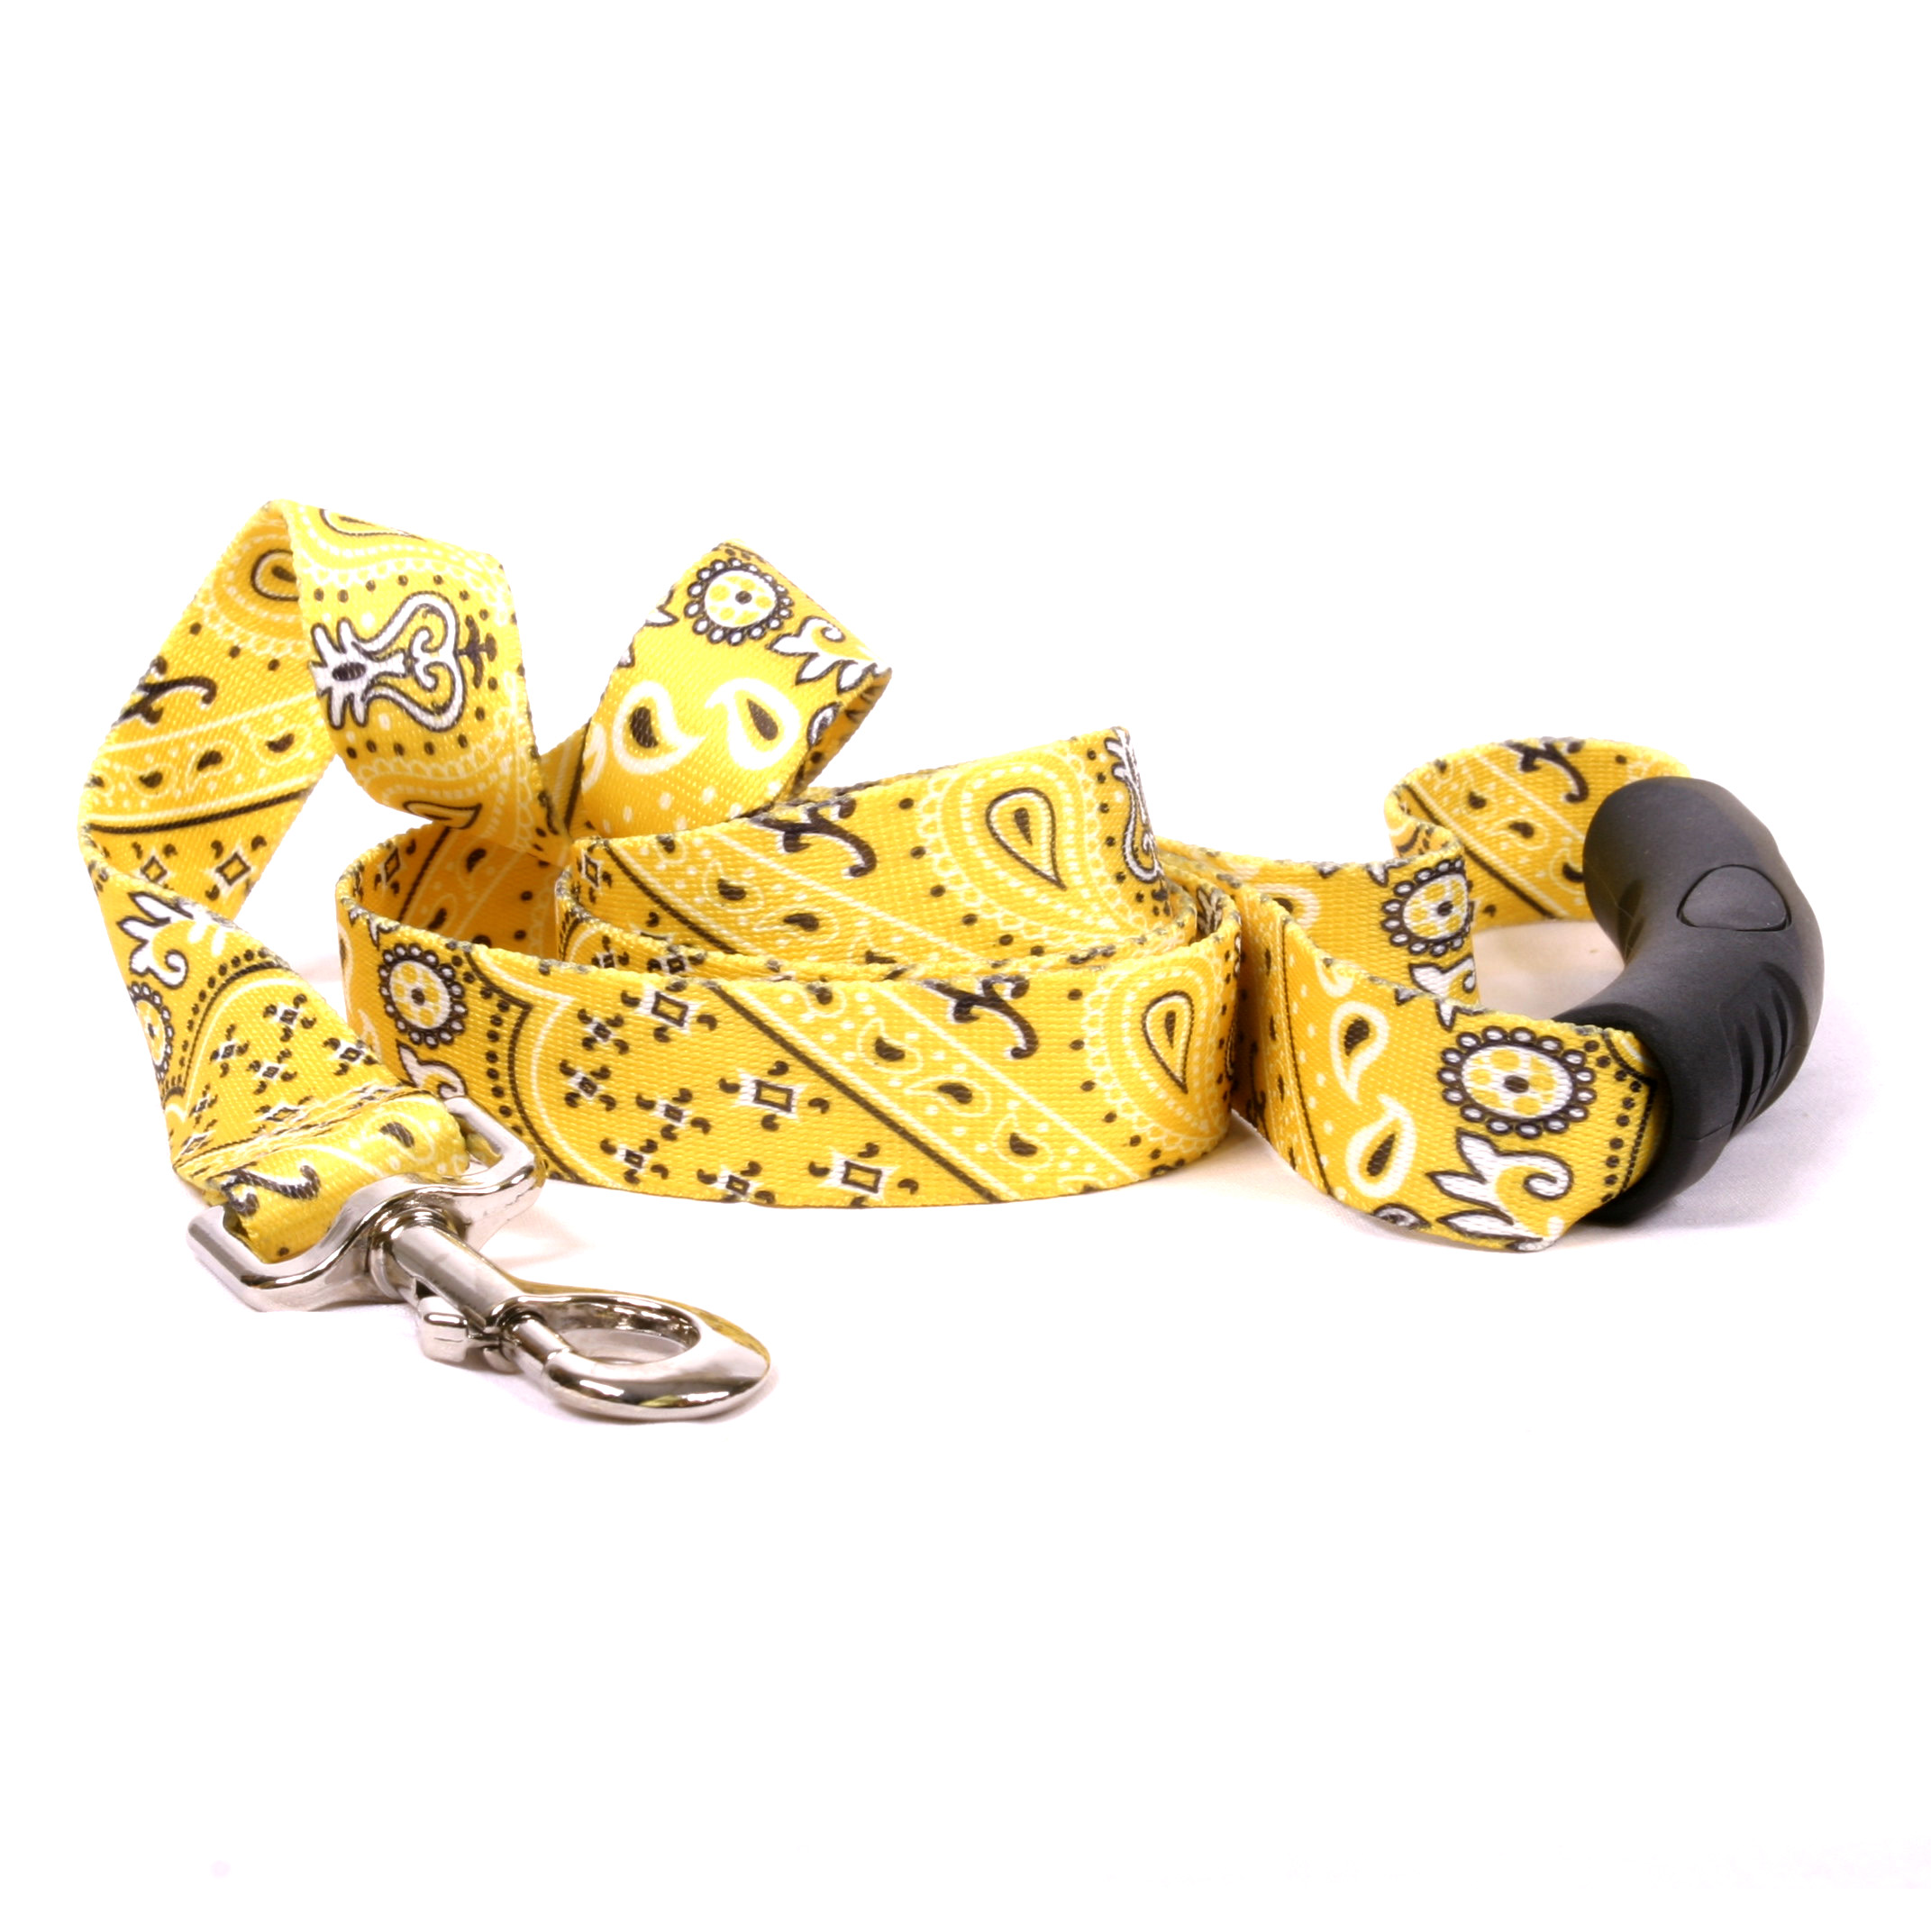 Bandana Yellow EZ-Lead